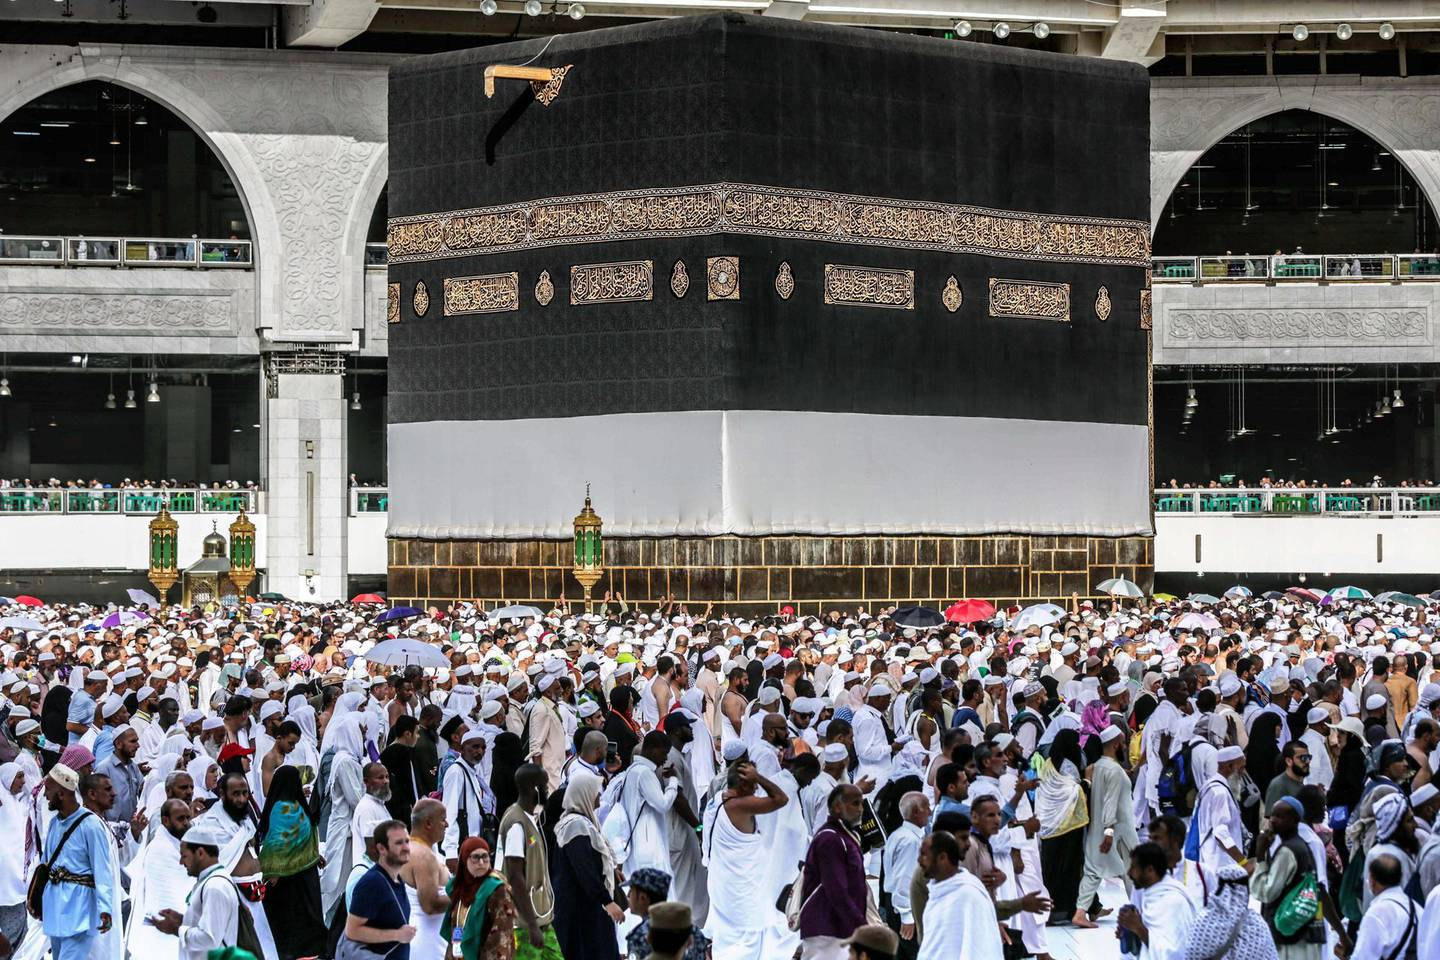 epa08251052 (FILE) - Muslim pilgrims perform Tawaf (circling) around the Kaaba inside the al-Haram al-Sharif mosque, in preparation of the start of the Hajj 2019 pilgrimage, Mecca, Saudi Arabia, 07 August 2019 (Reissued 26 February 2020). According to a statement on 26 February, Saudi Arabia has suspended religious tourism temporarily for the purposes of Umrah (a minor Islamic pilgrimage that can be done at any time of the year), as well as visiting the mosque of Prophet Muhammad, al-Masjid an Nabawi, in efforts to prevent the Covid-19 coronavirus in the Kingdom. Saudi Arabia is also suspending the entry of non-Saudi citizens coming from affected countries.  EPA/STR *** Local Caption *** 55383218